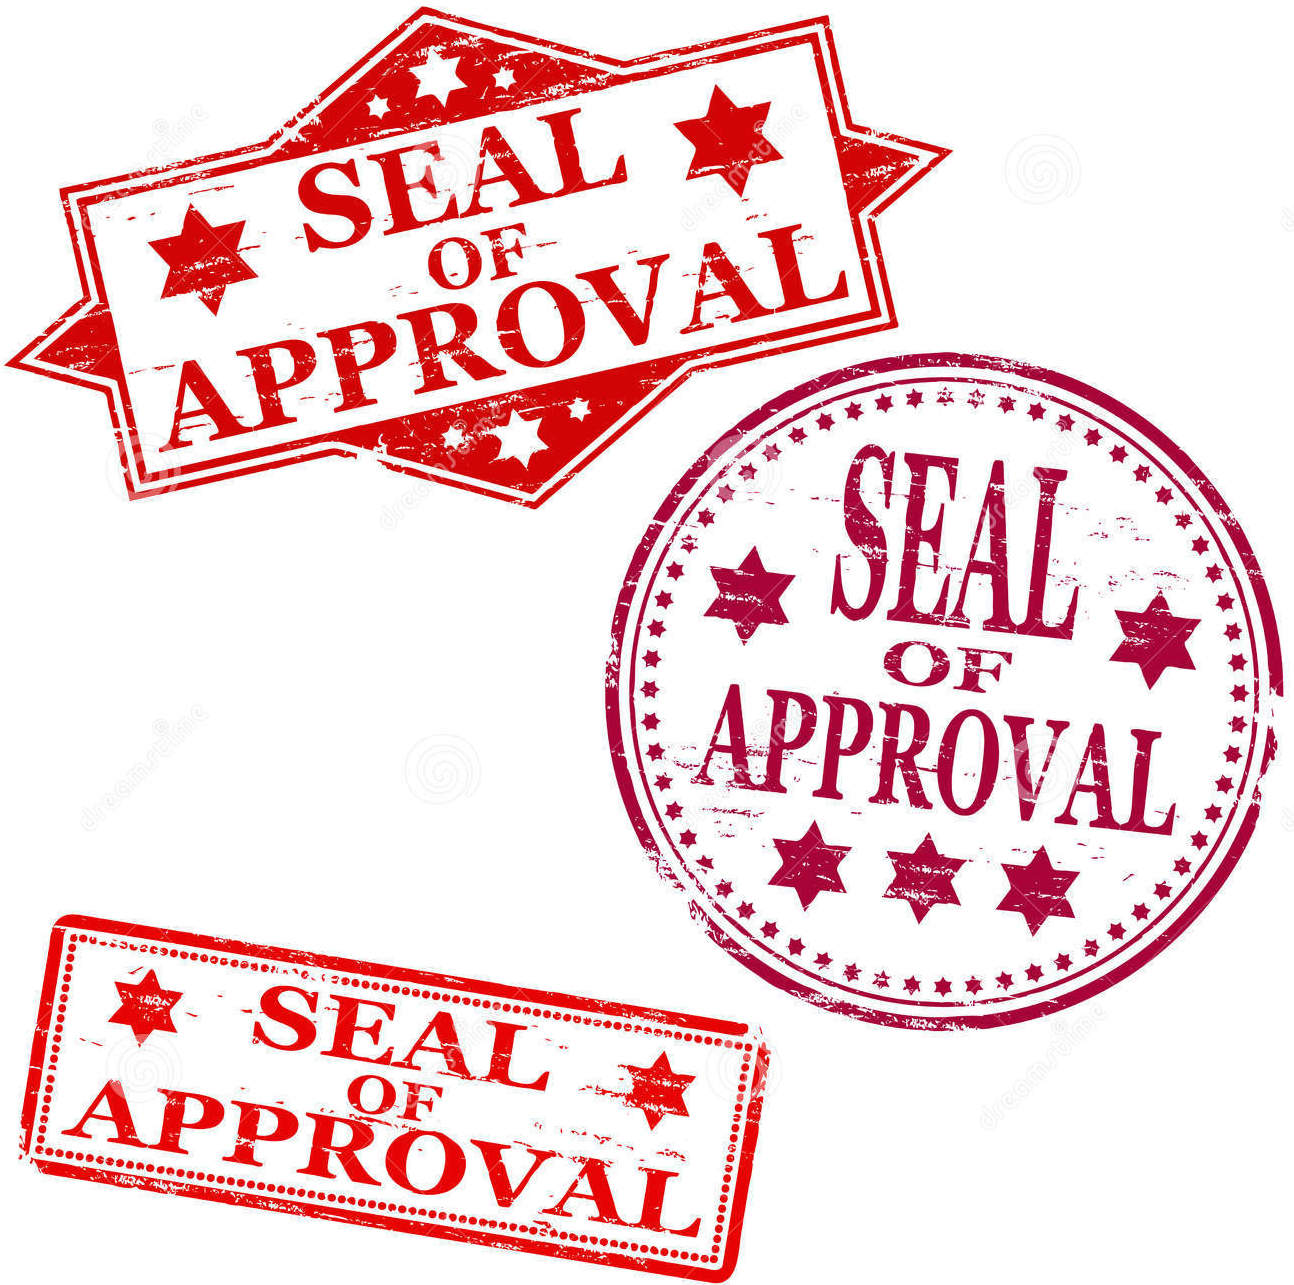 seal-approval-stamp-21954193